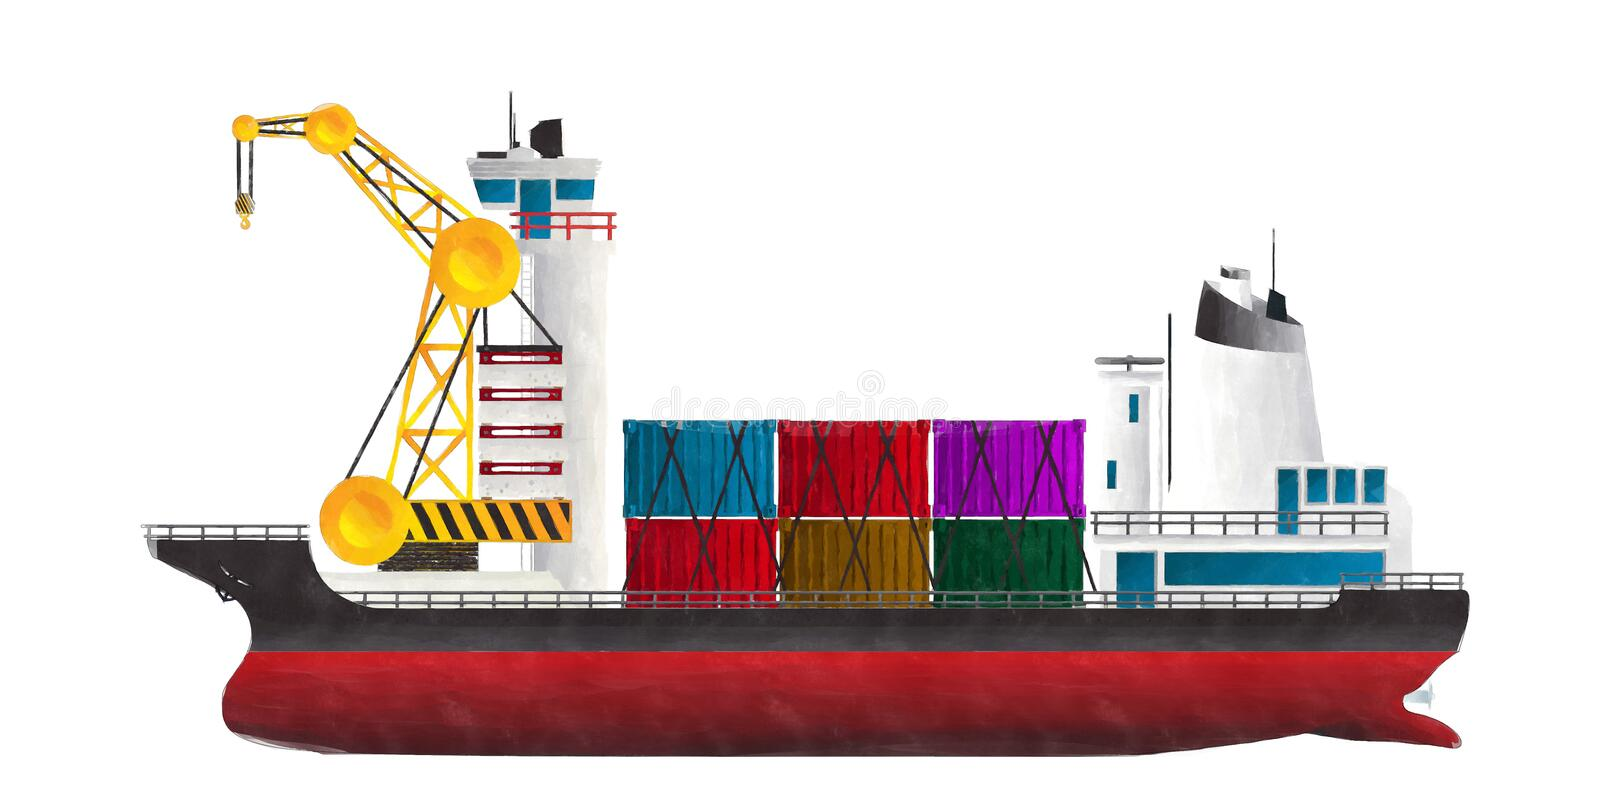 Watercolor container ship. Watercolor style drawing of container ship against white background stock illustration